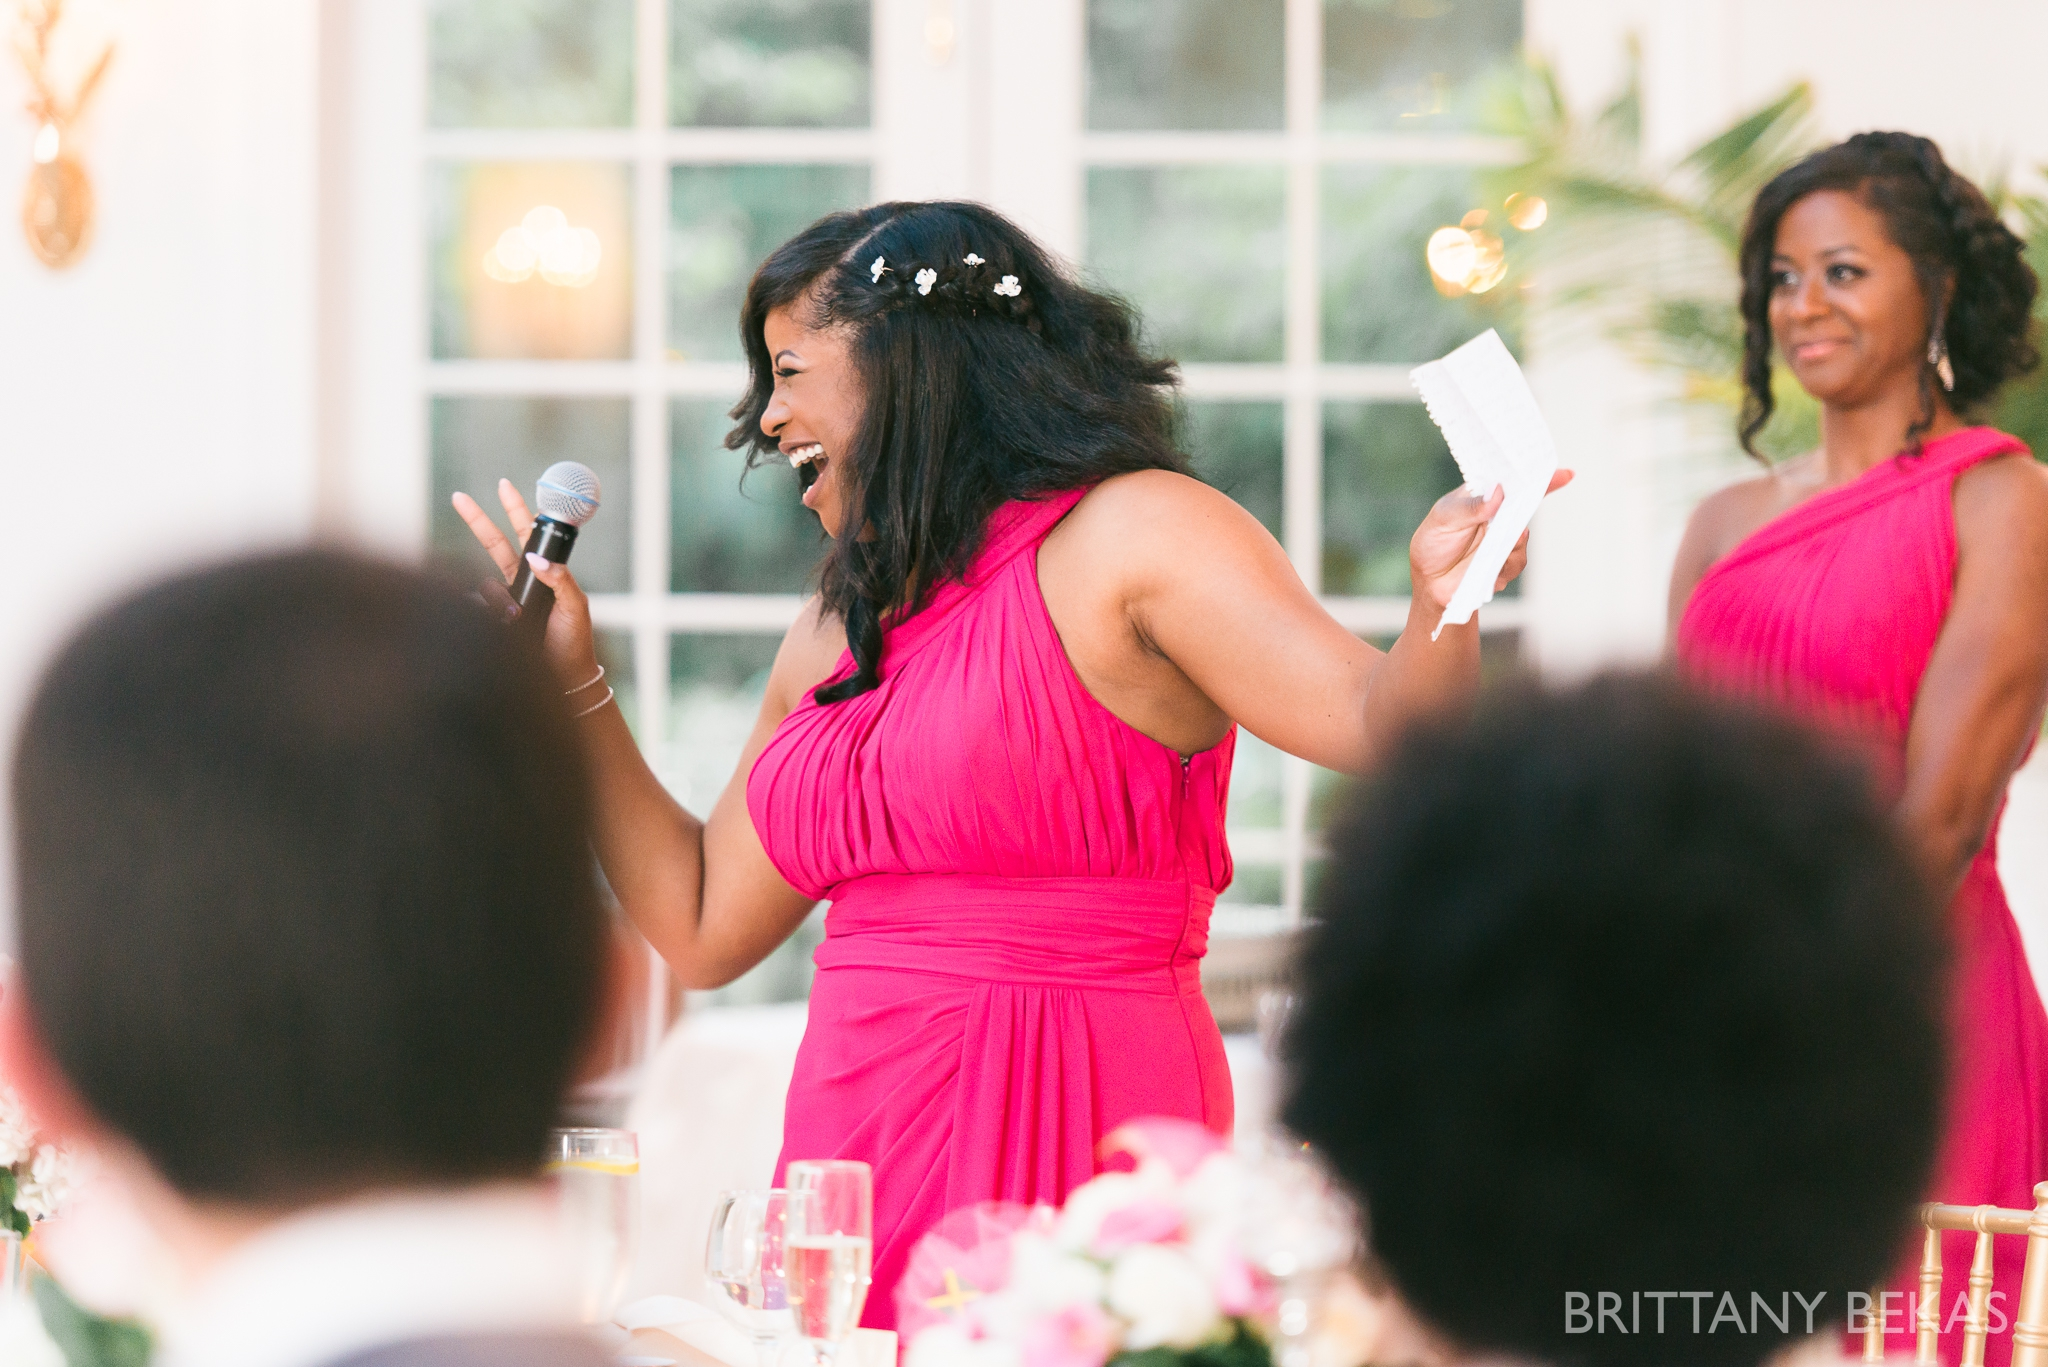 Patrick Haley Mansion Wedding - Brittany Bekas Photography_0034